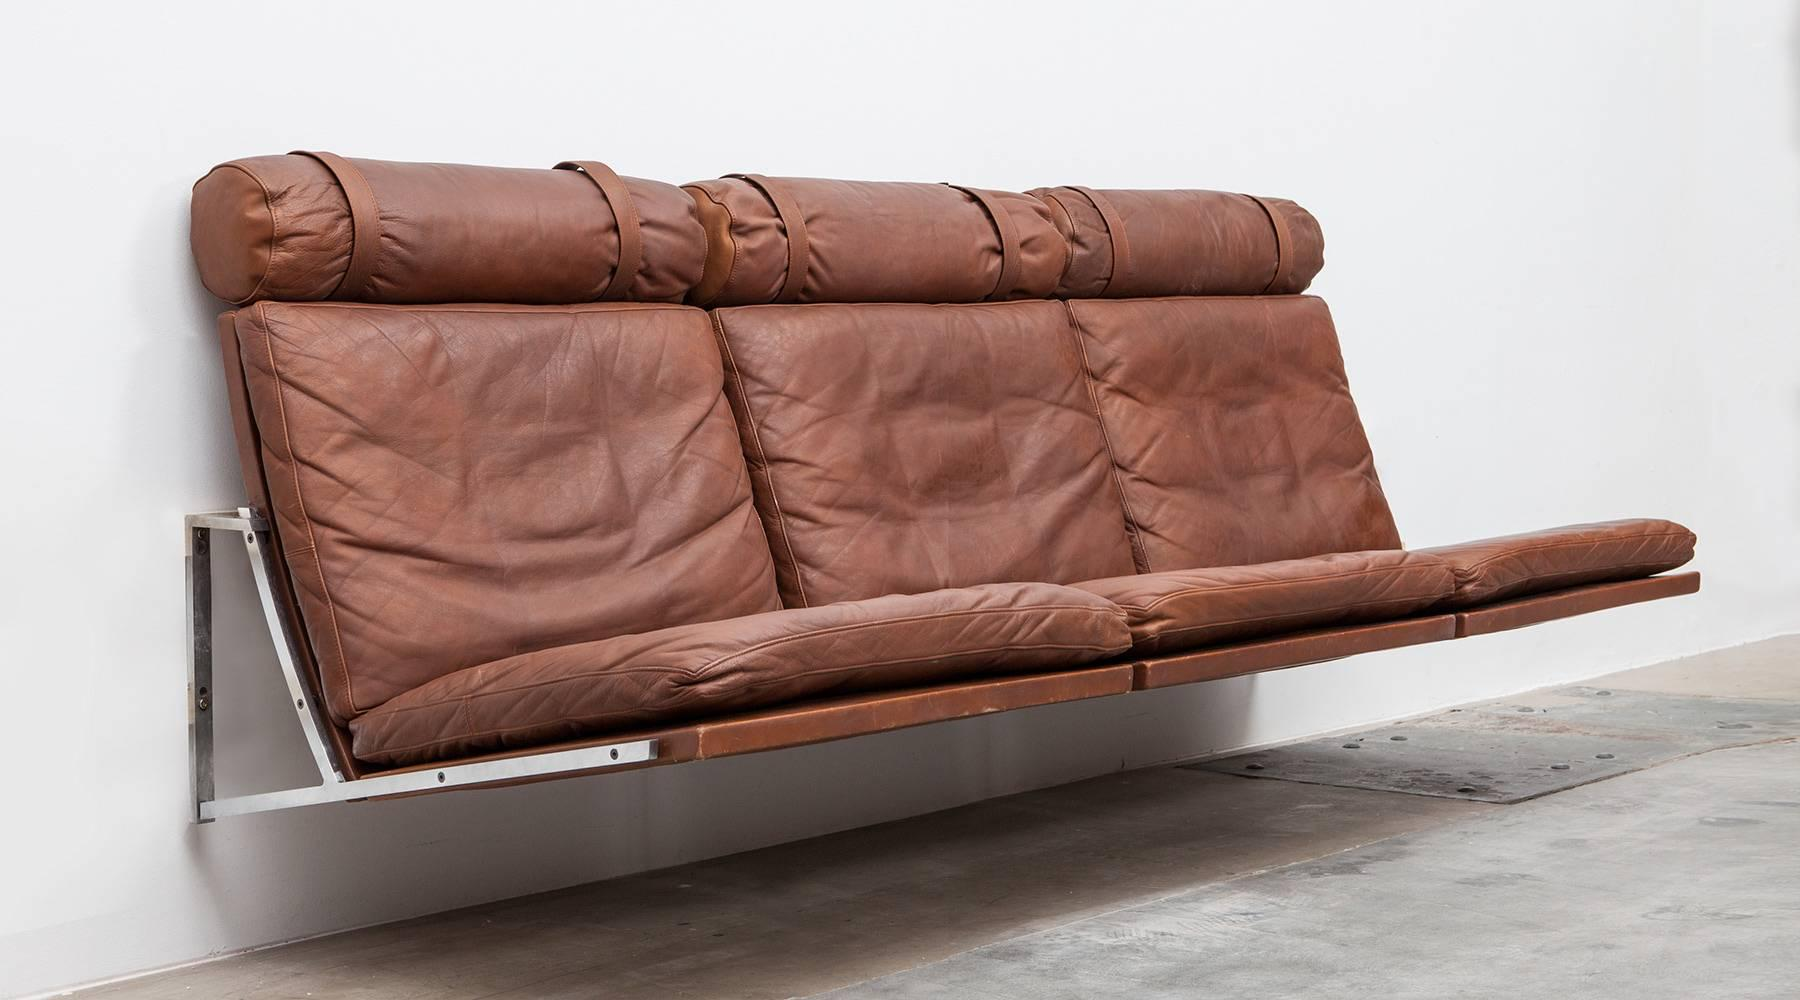 Sofas Frankfurt 1960s Brown Leather Wall Mounted Sofa By Fabricius Kastholm